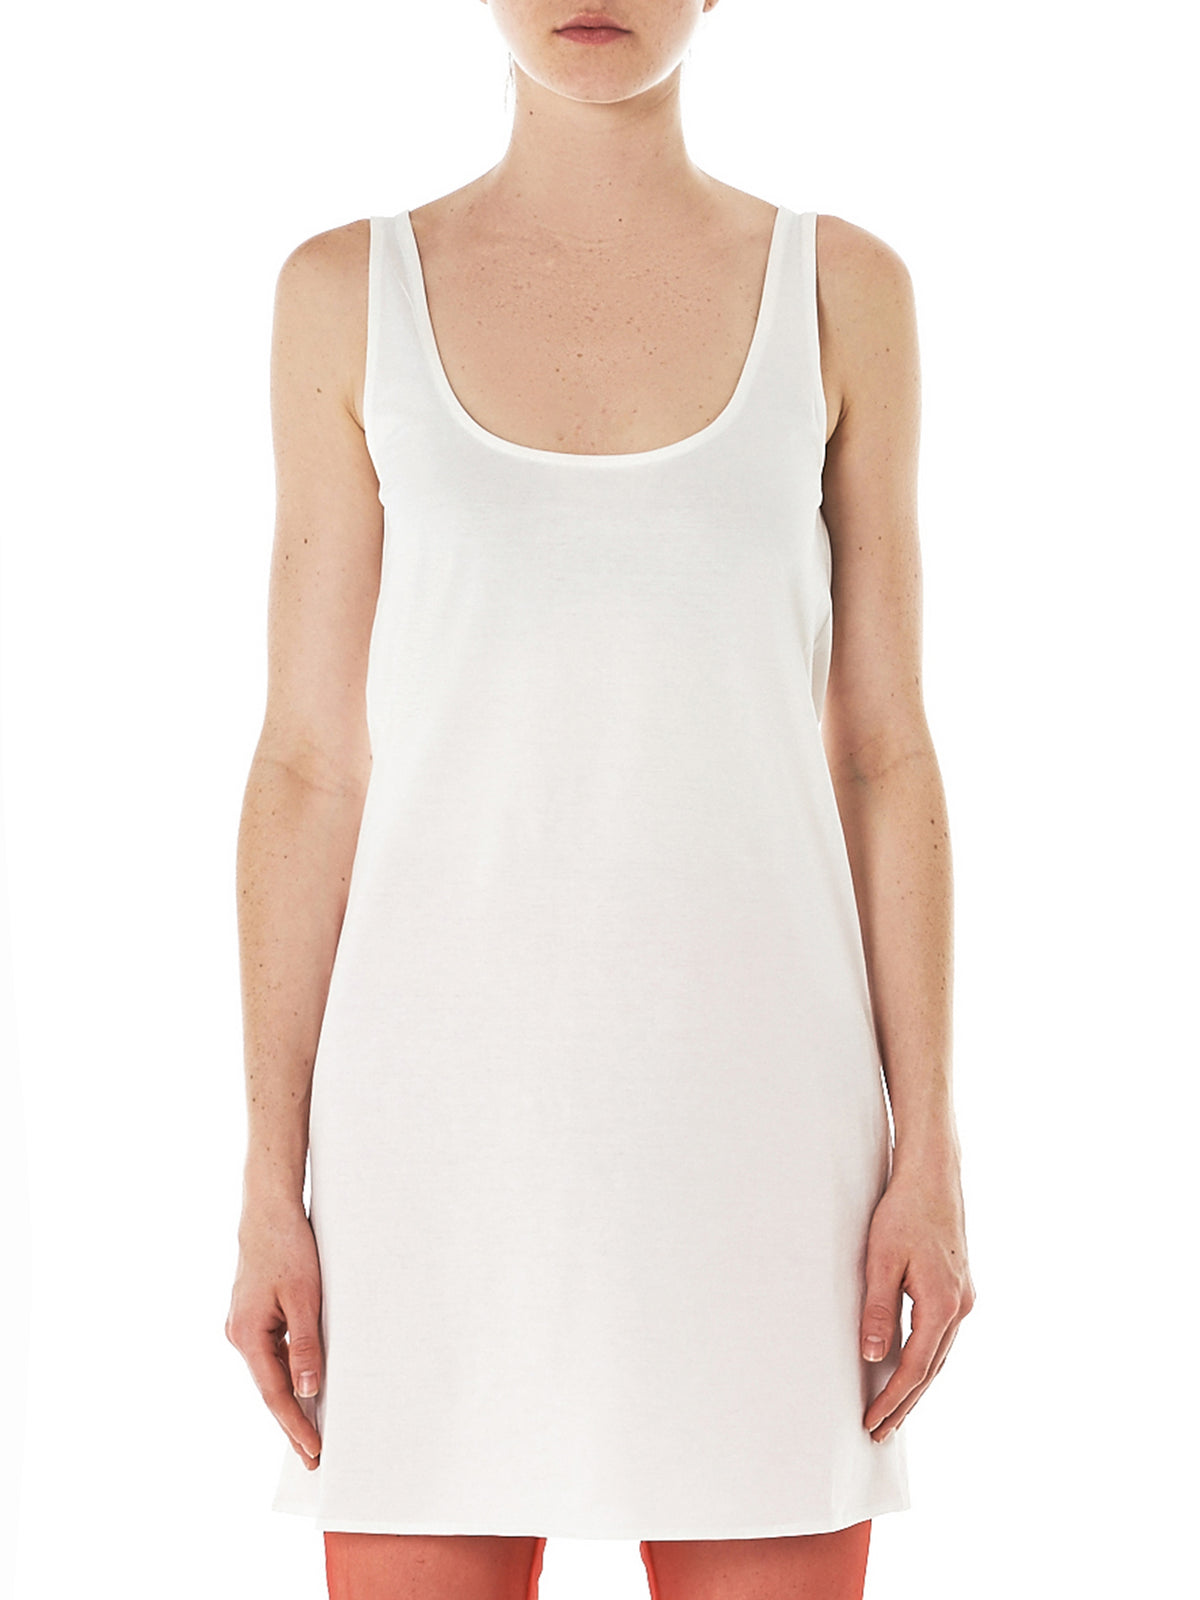 Xiao Li Slip Dress - Hlorenzo Front